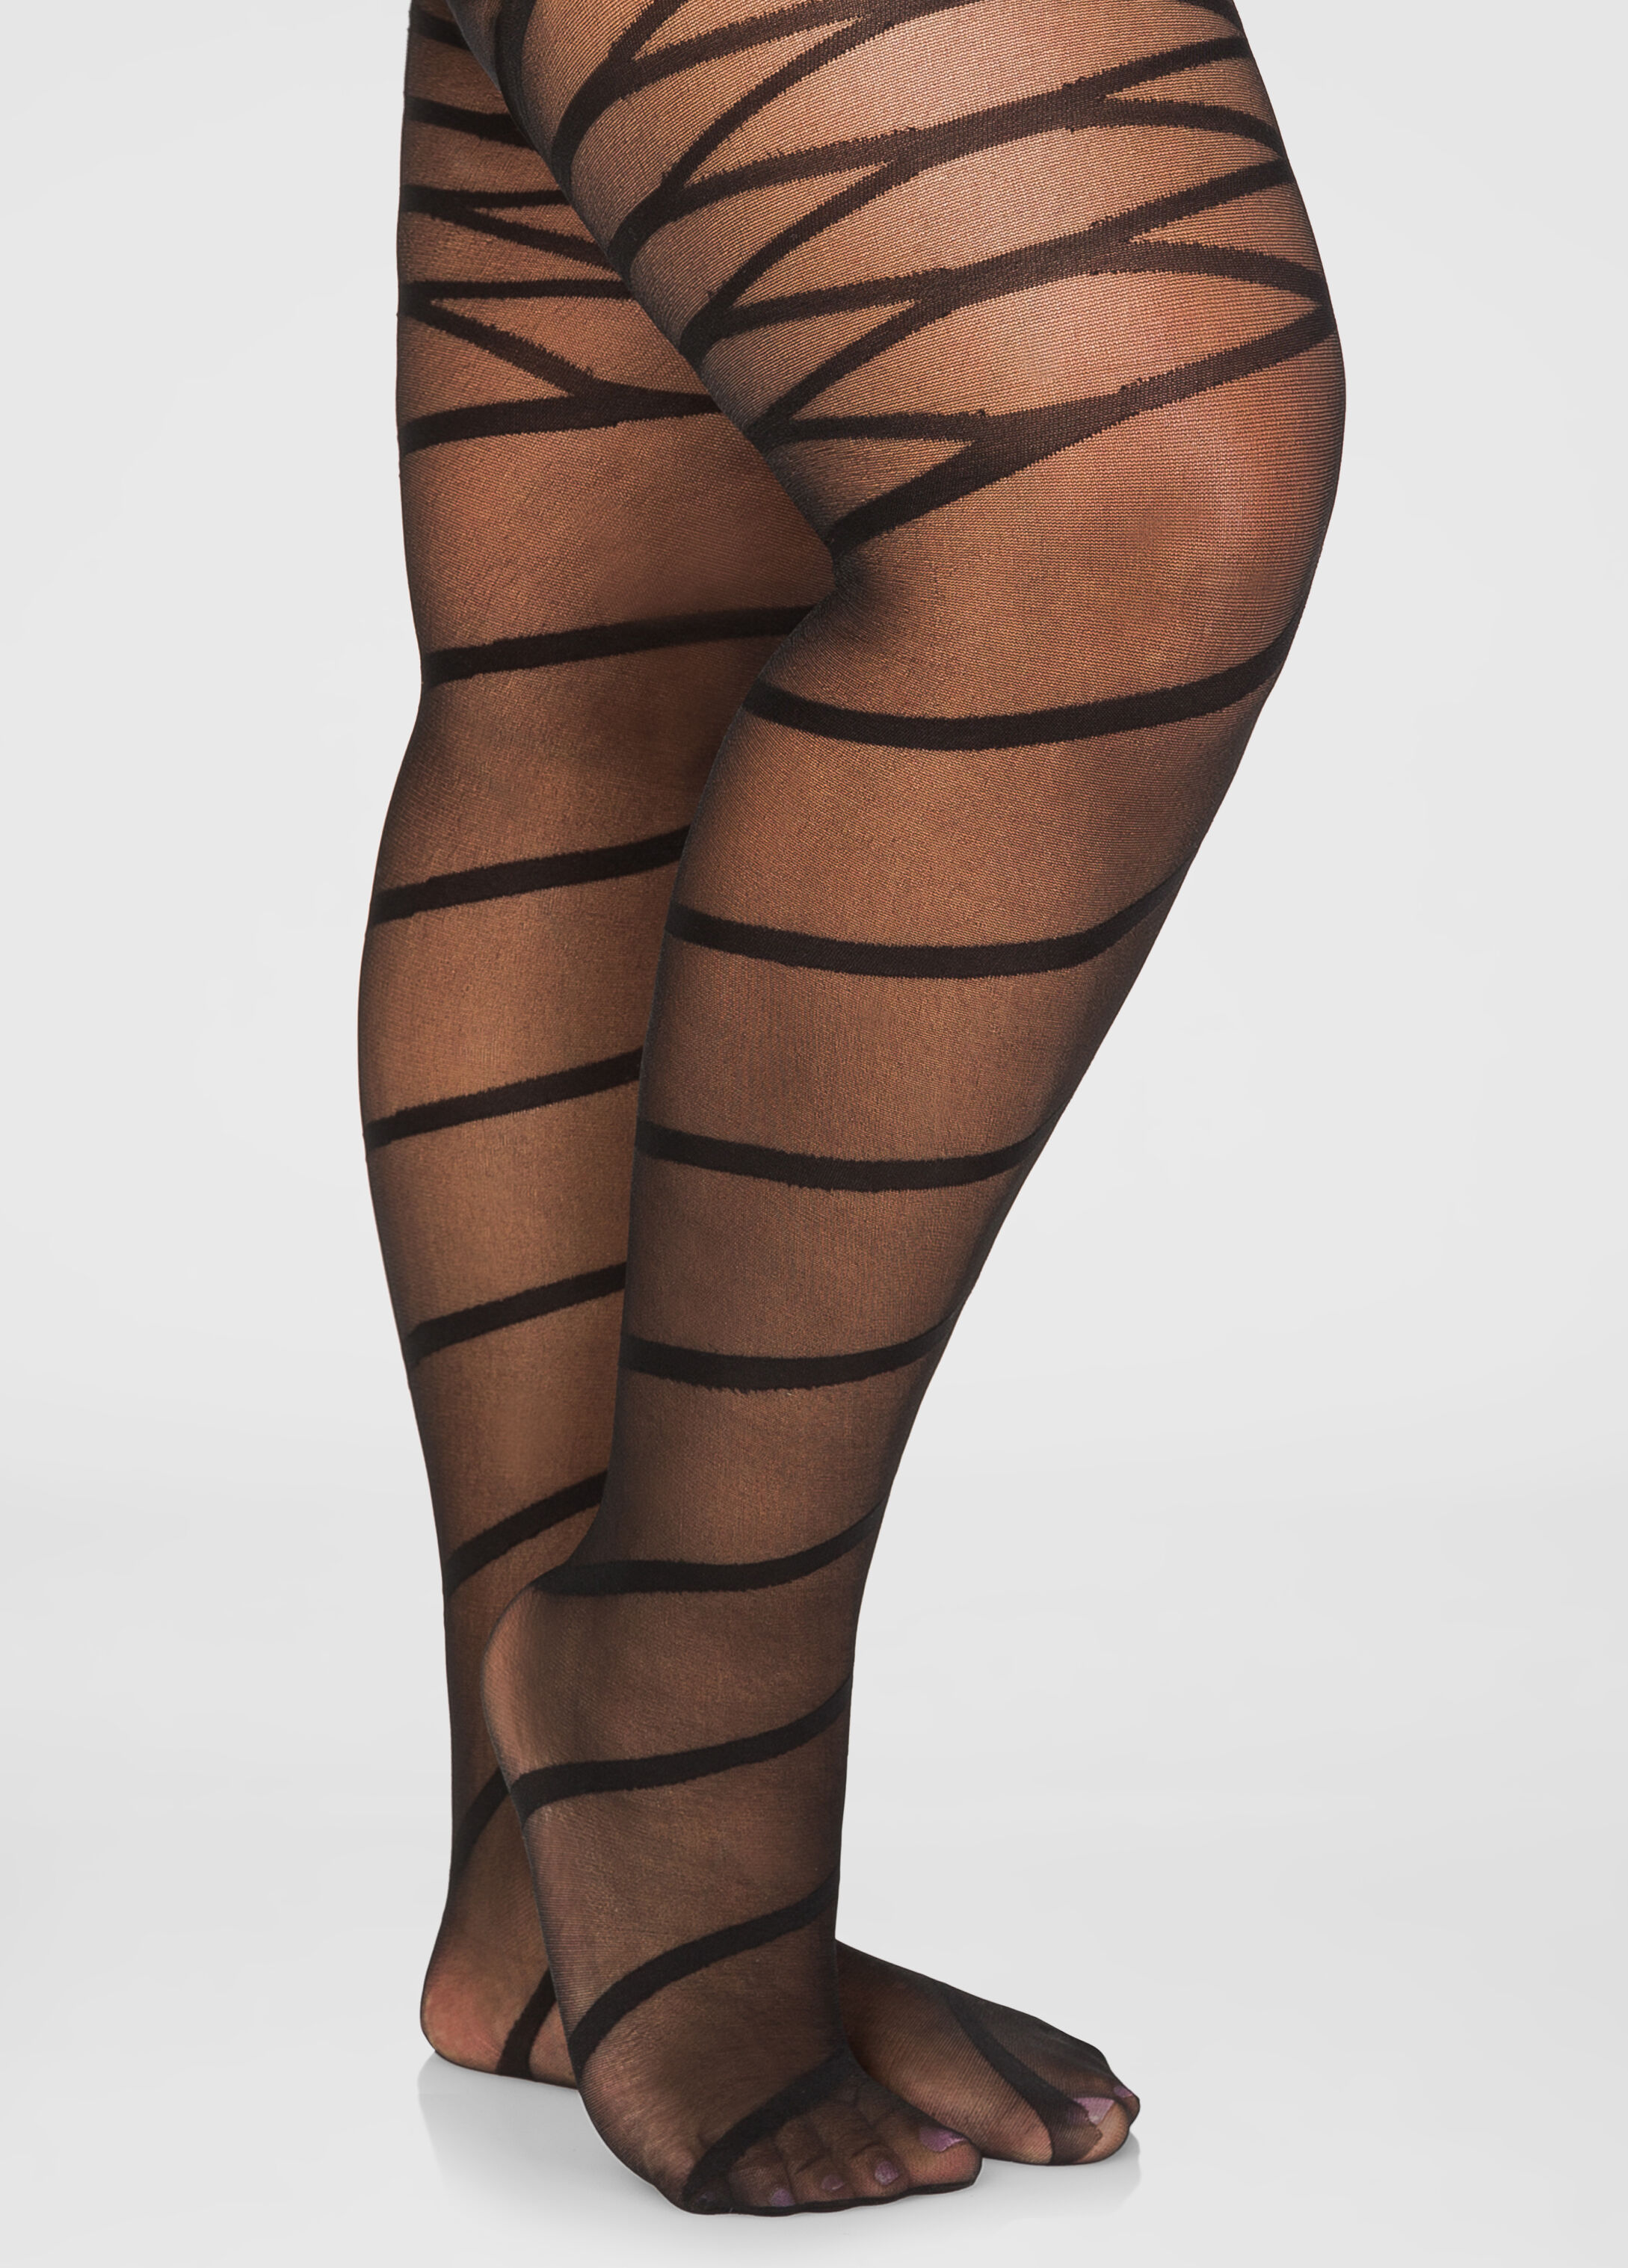 Spiral and Lace Up Sheer Footed Tights